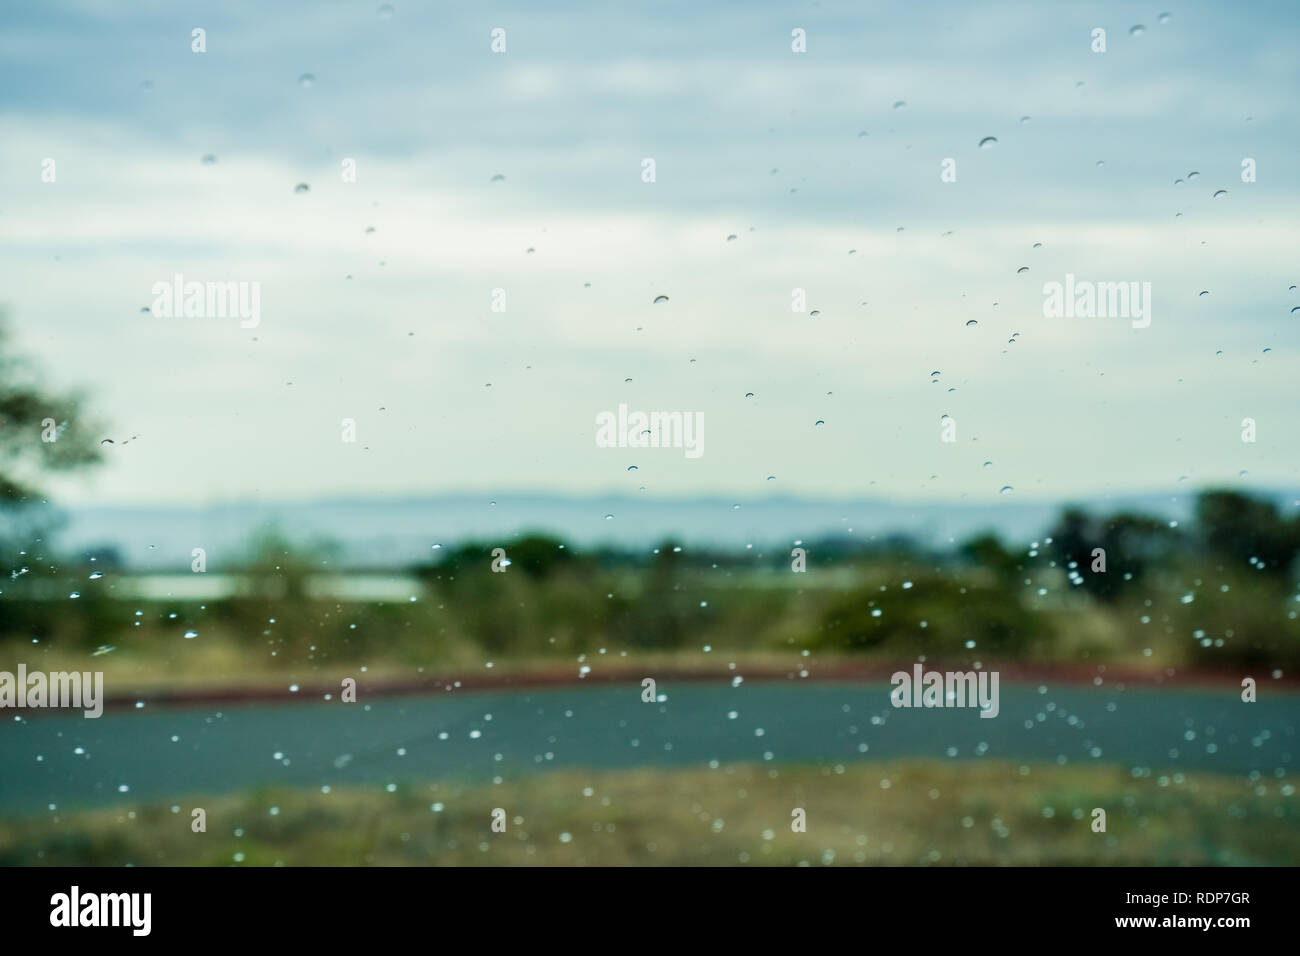 Drops of rain on the window; blurred landscape in the background - Stock Image